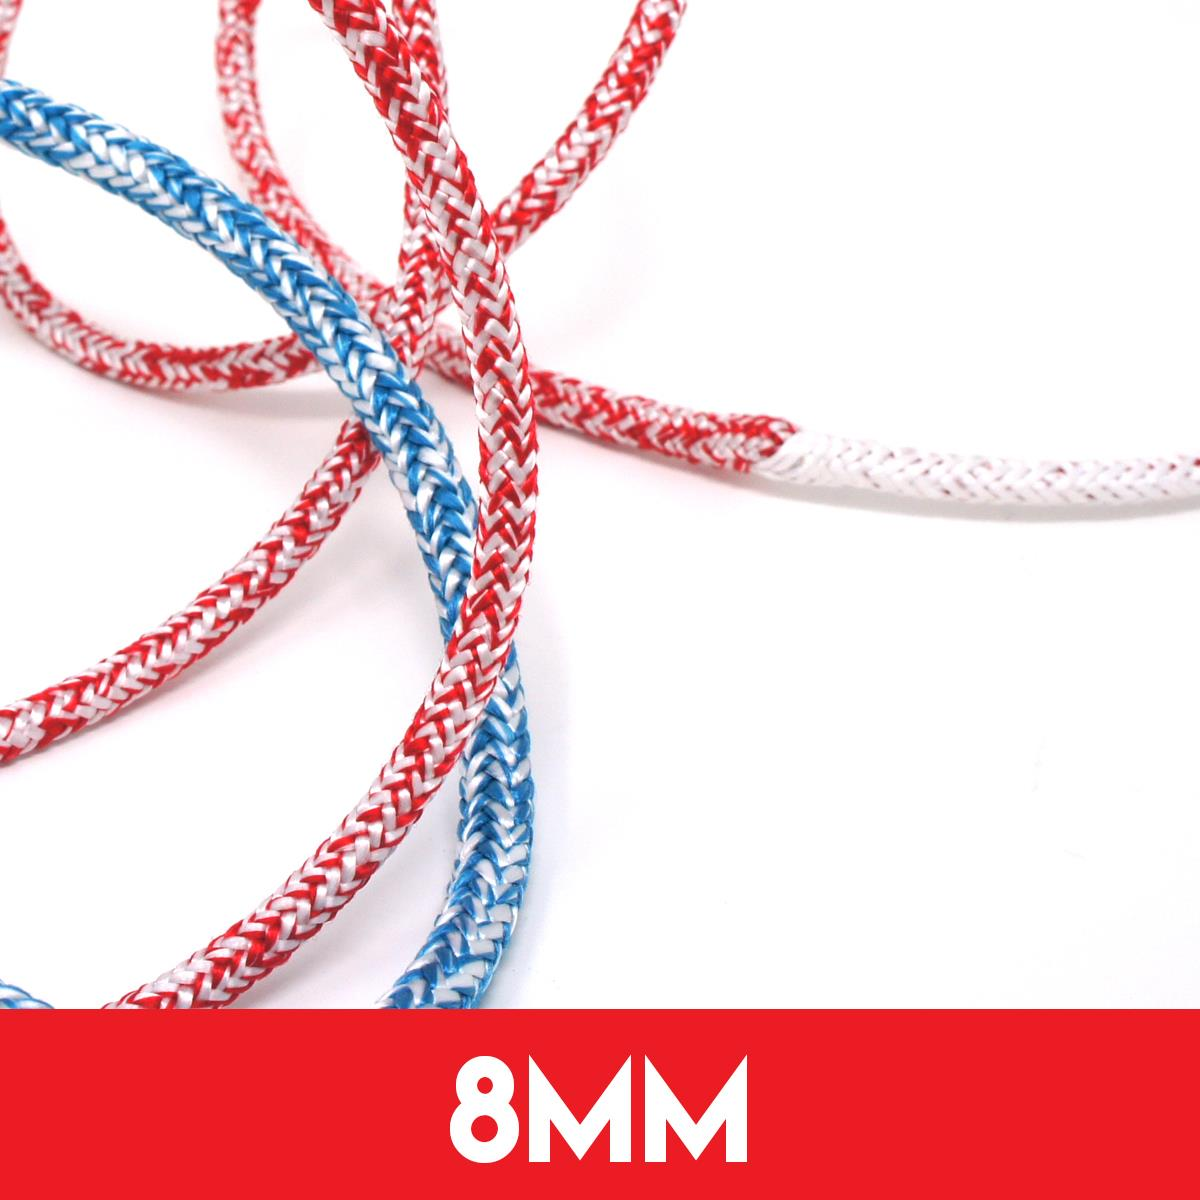 8mm Evolution Dinghy Lite Dyneema Core Rope